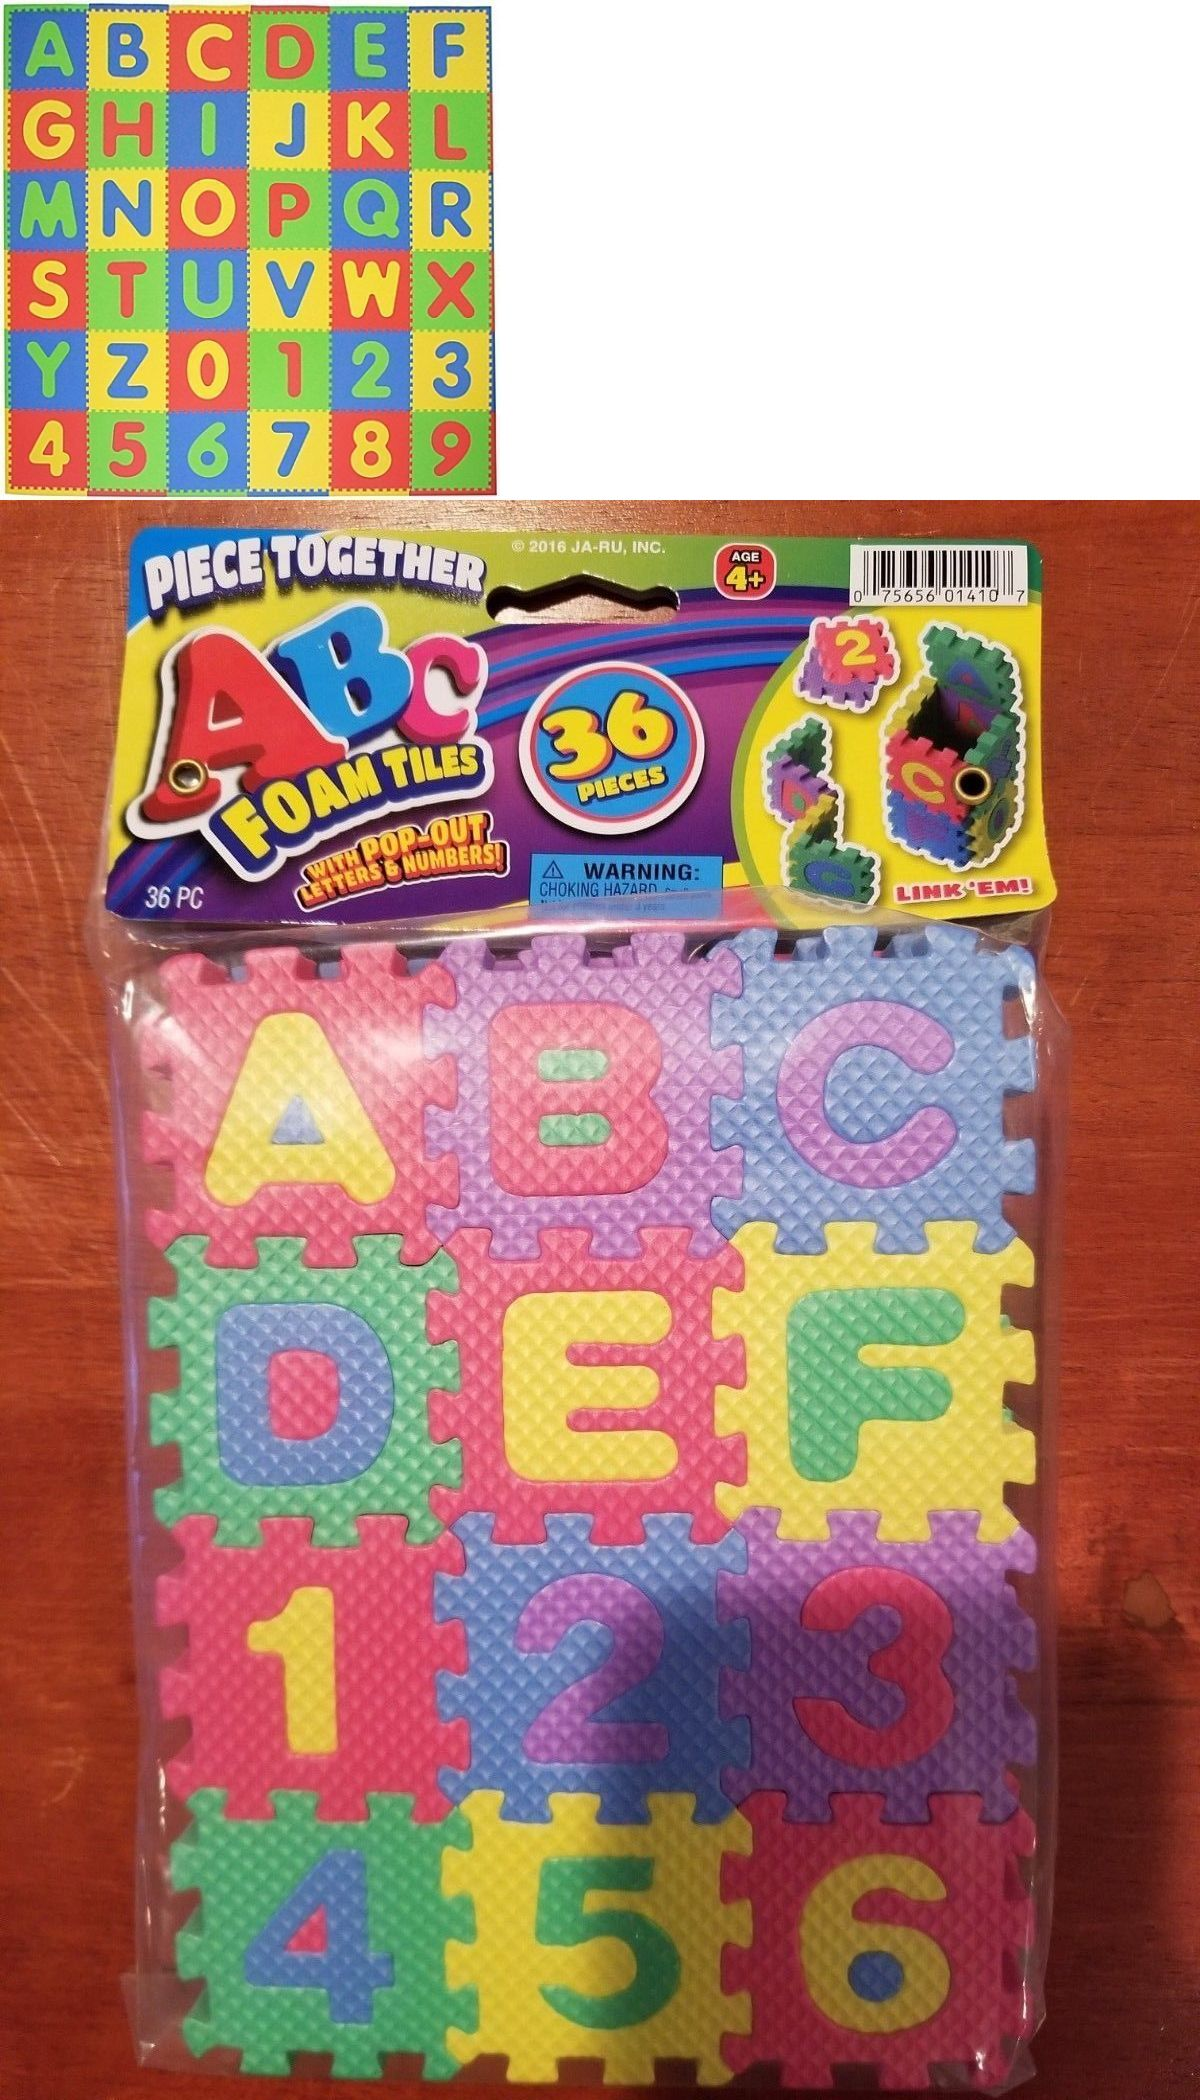 Abc 123 Foam Tiles Interlock 36 Pieces Learning Letters And Numbers 75656014107 Ebay Foam Tiles Childrens Play Mat Learning Letters